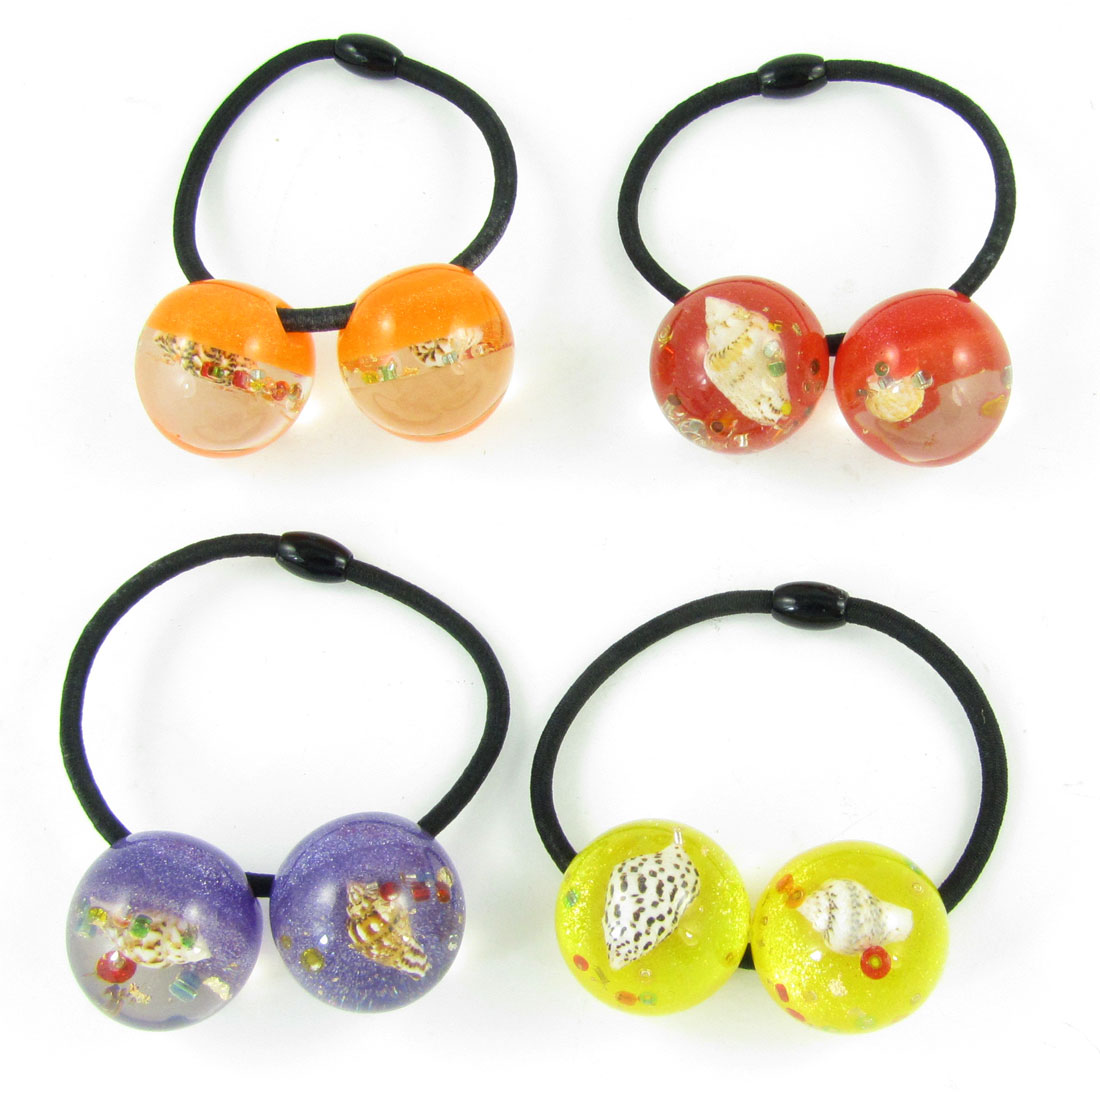 4pcs Conch Inlaid Assorted Color Beads Decor Elastic Hair Band Tie for Women